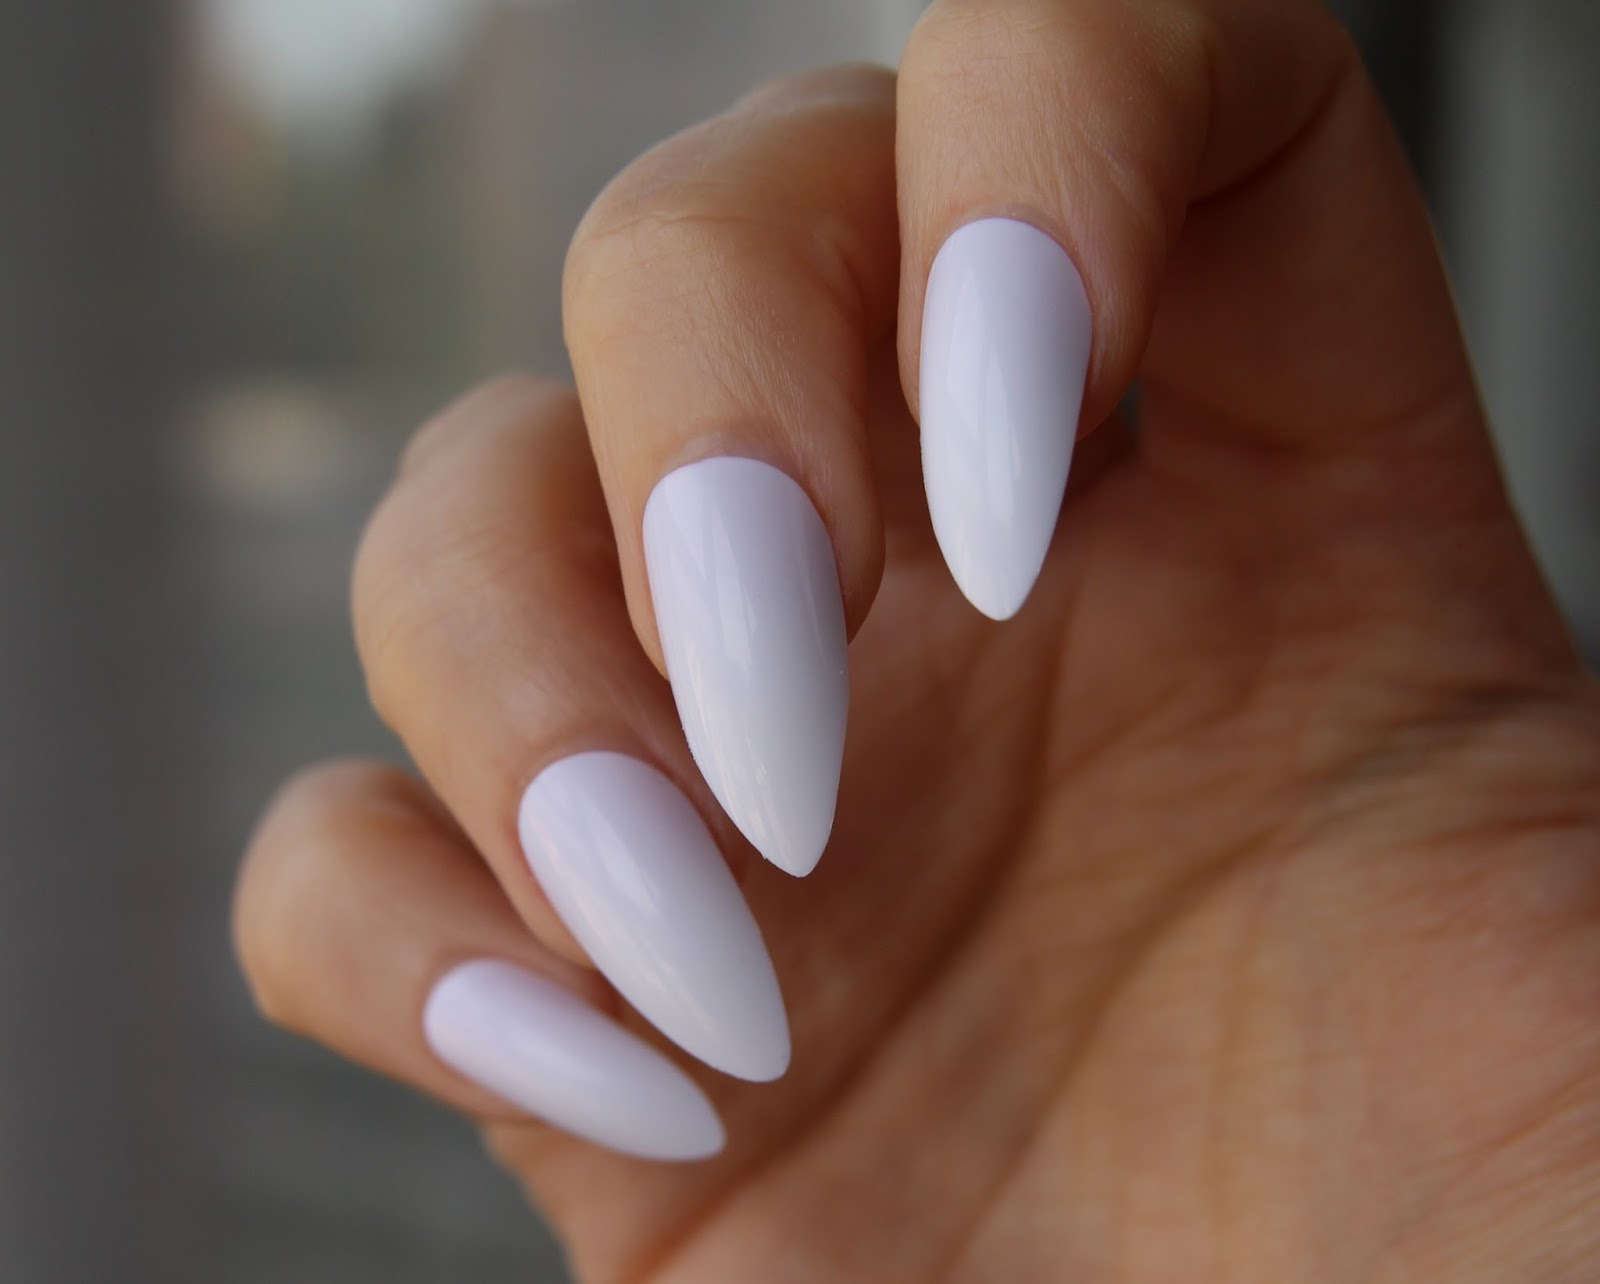 The Shape Is Clic Stiletto Hte Point Not As Sharp Some Other Nails And I Think It Makes Them More Elegant Easy To Wear